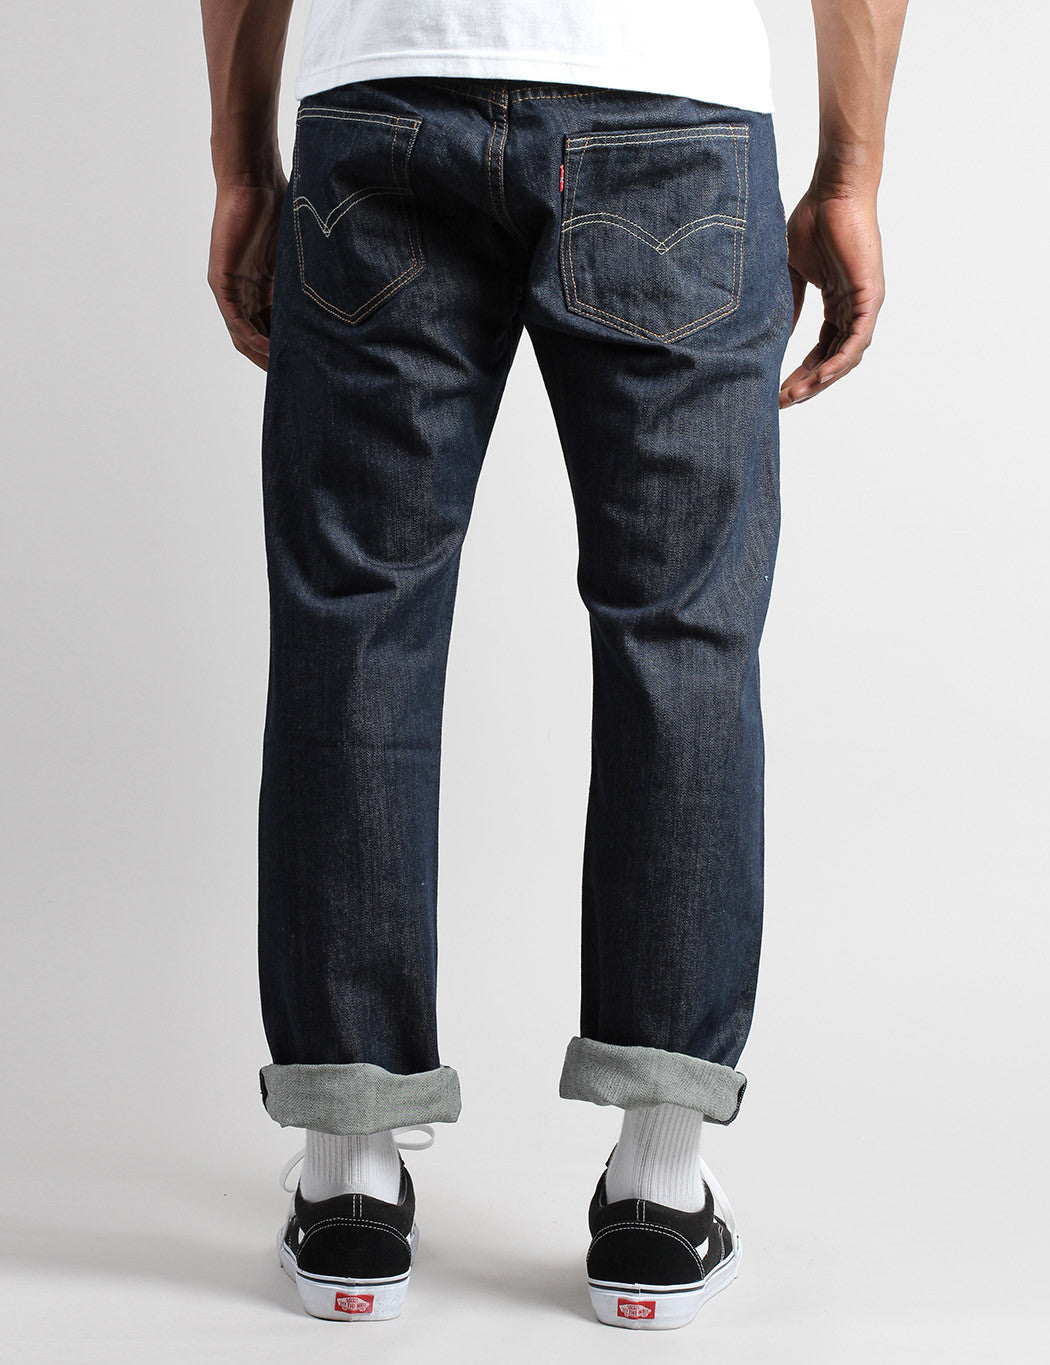 Levis 501 Original Fit Jeans - Marlon Dark Blue